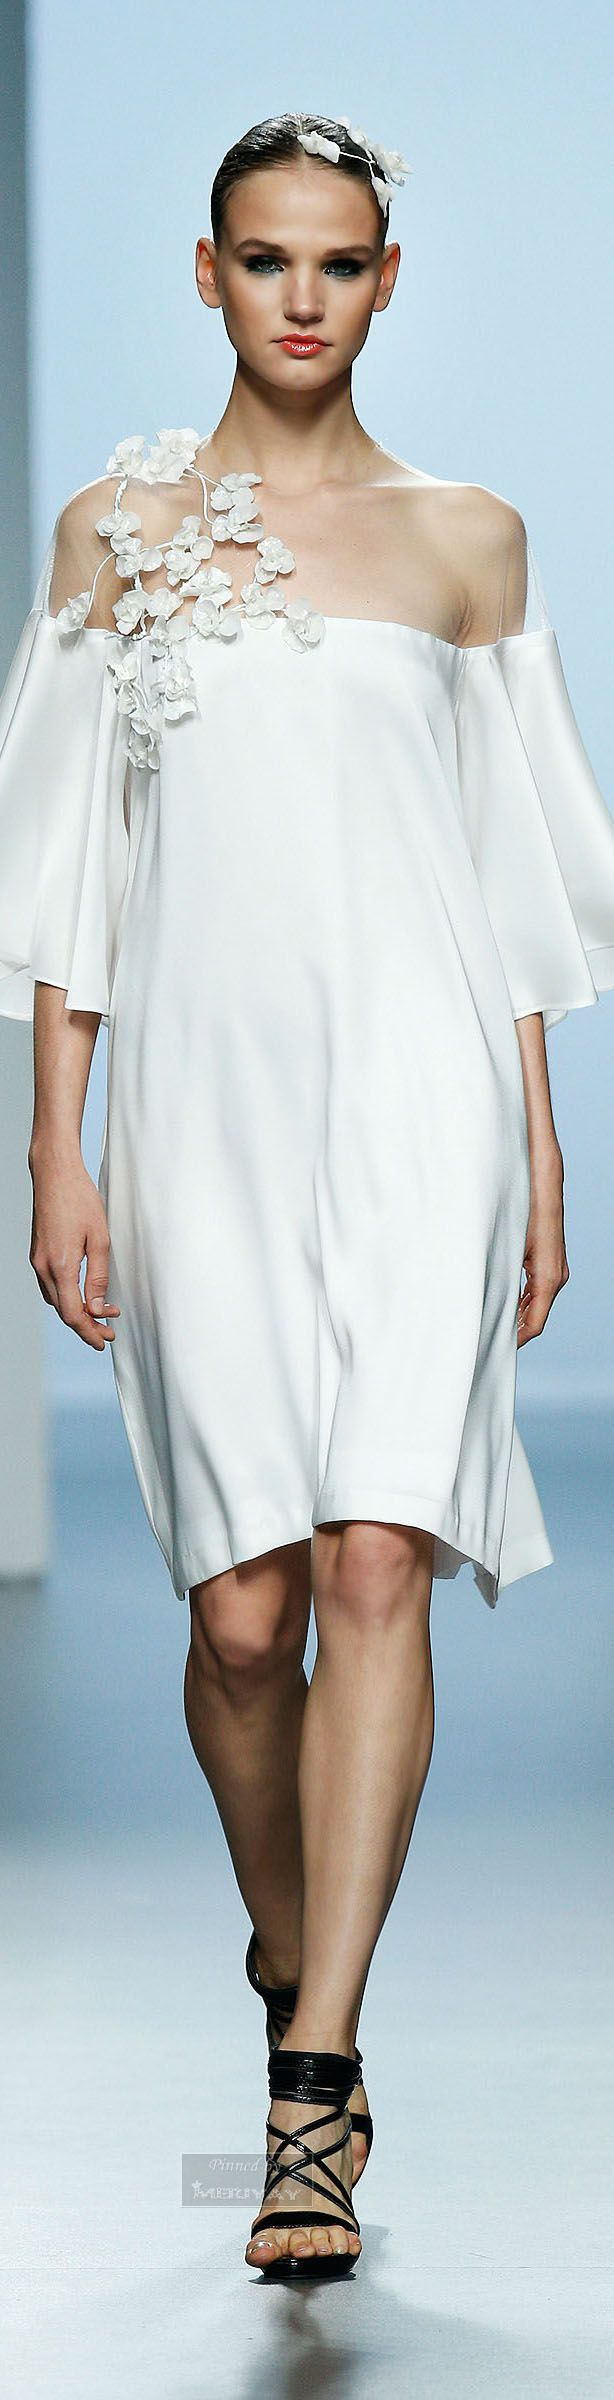 Juana Martin S/S 2015 white dress ~Touches of Color~